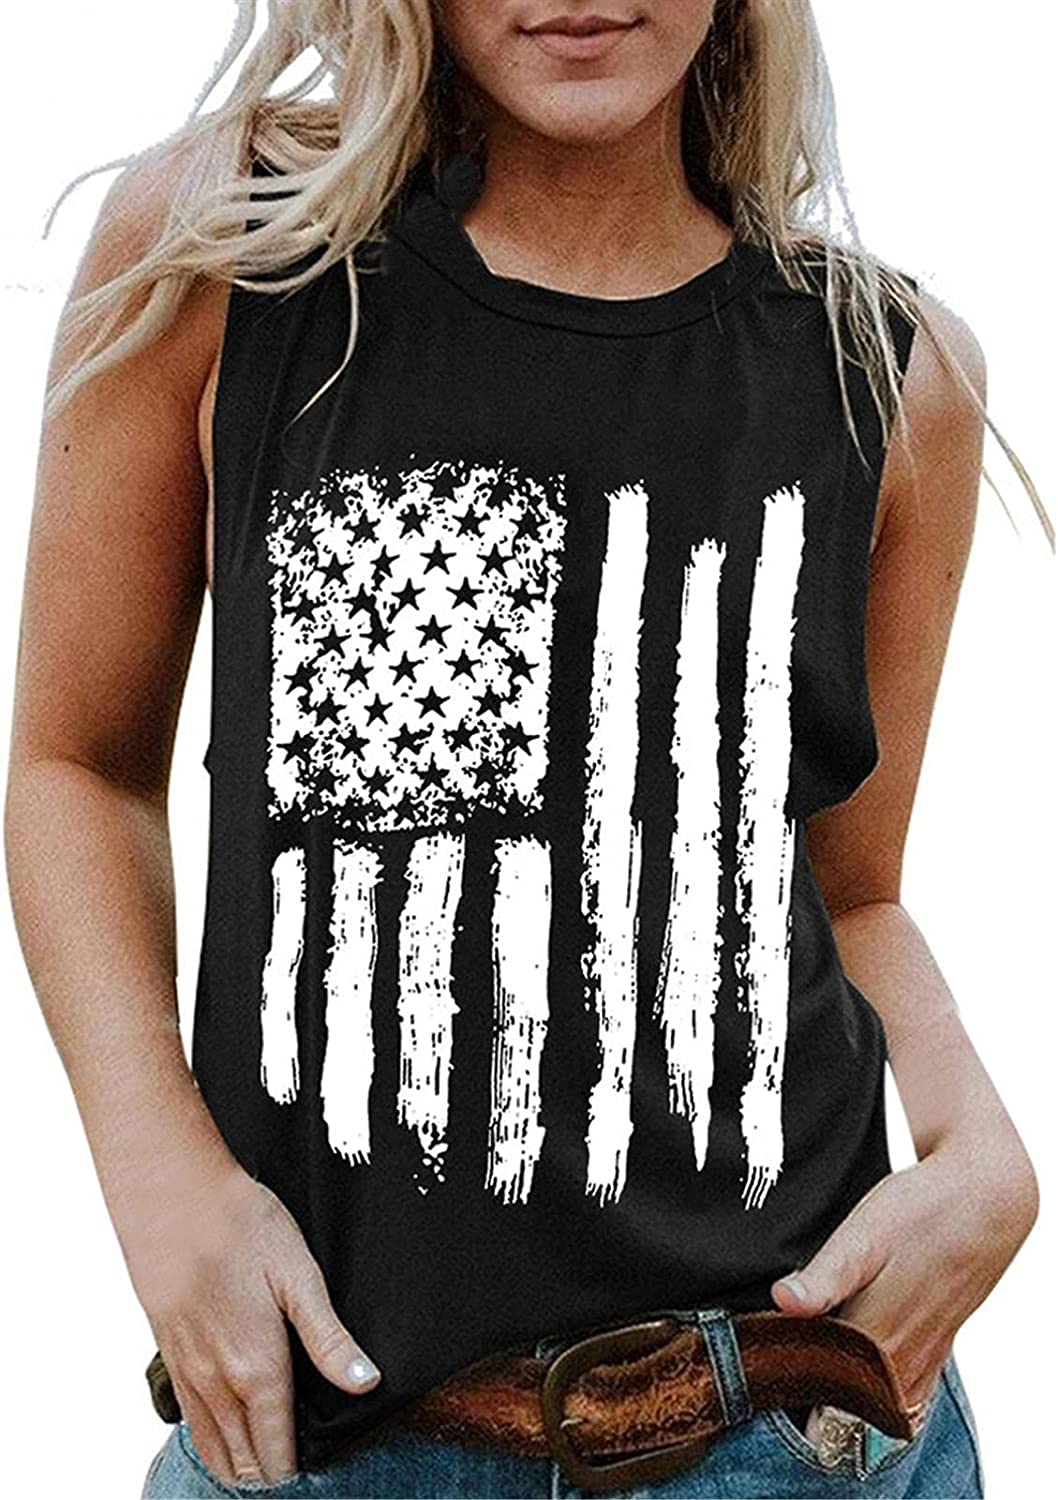 AODONG Tank Tops for Women, Womens American Flag Tank Tops Casual Summer Sleeveless Shirts 4th of July Tee Tops